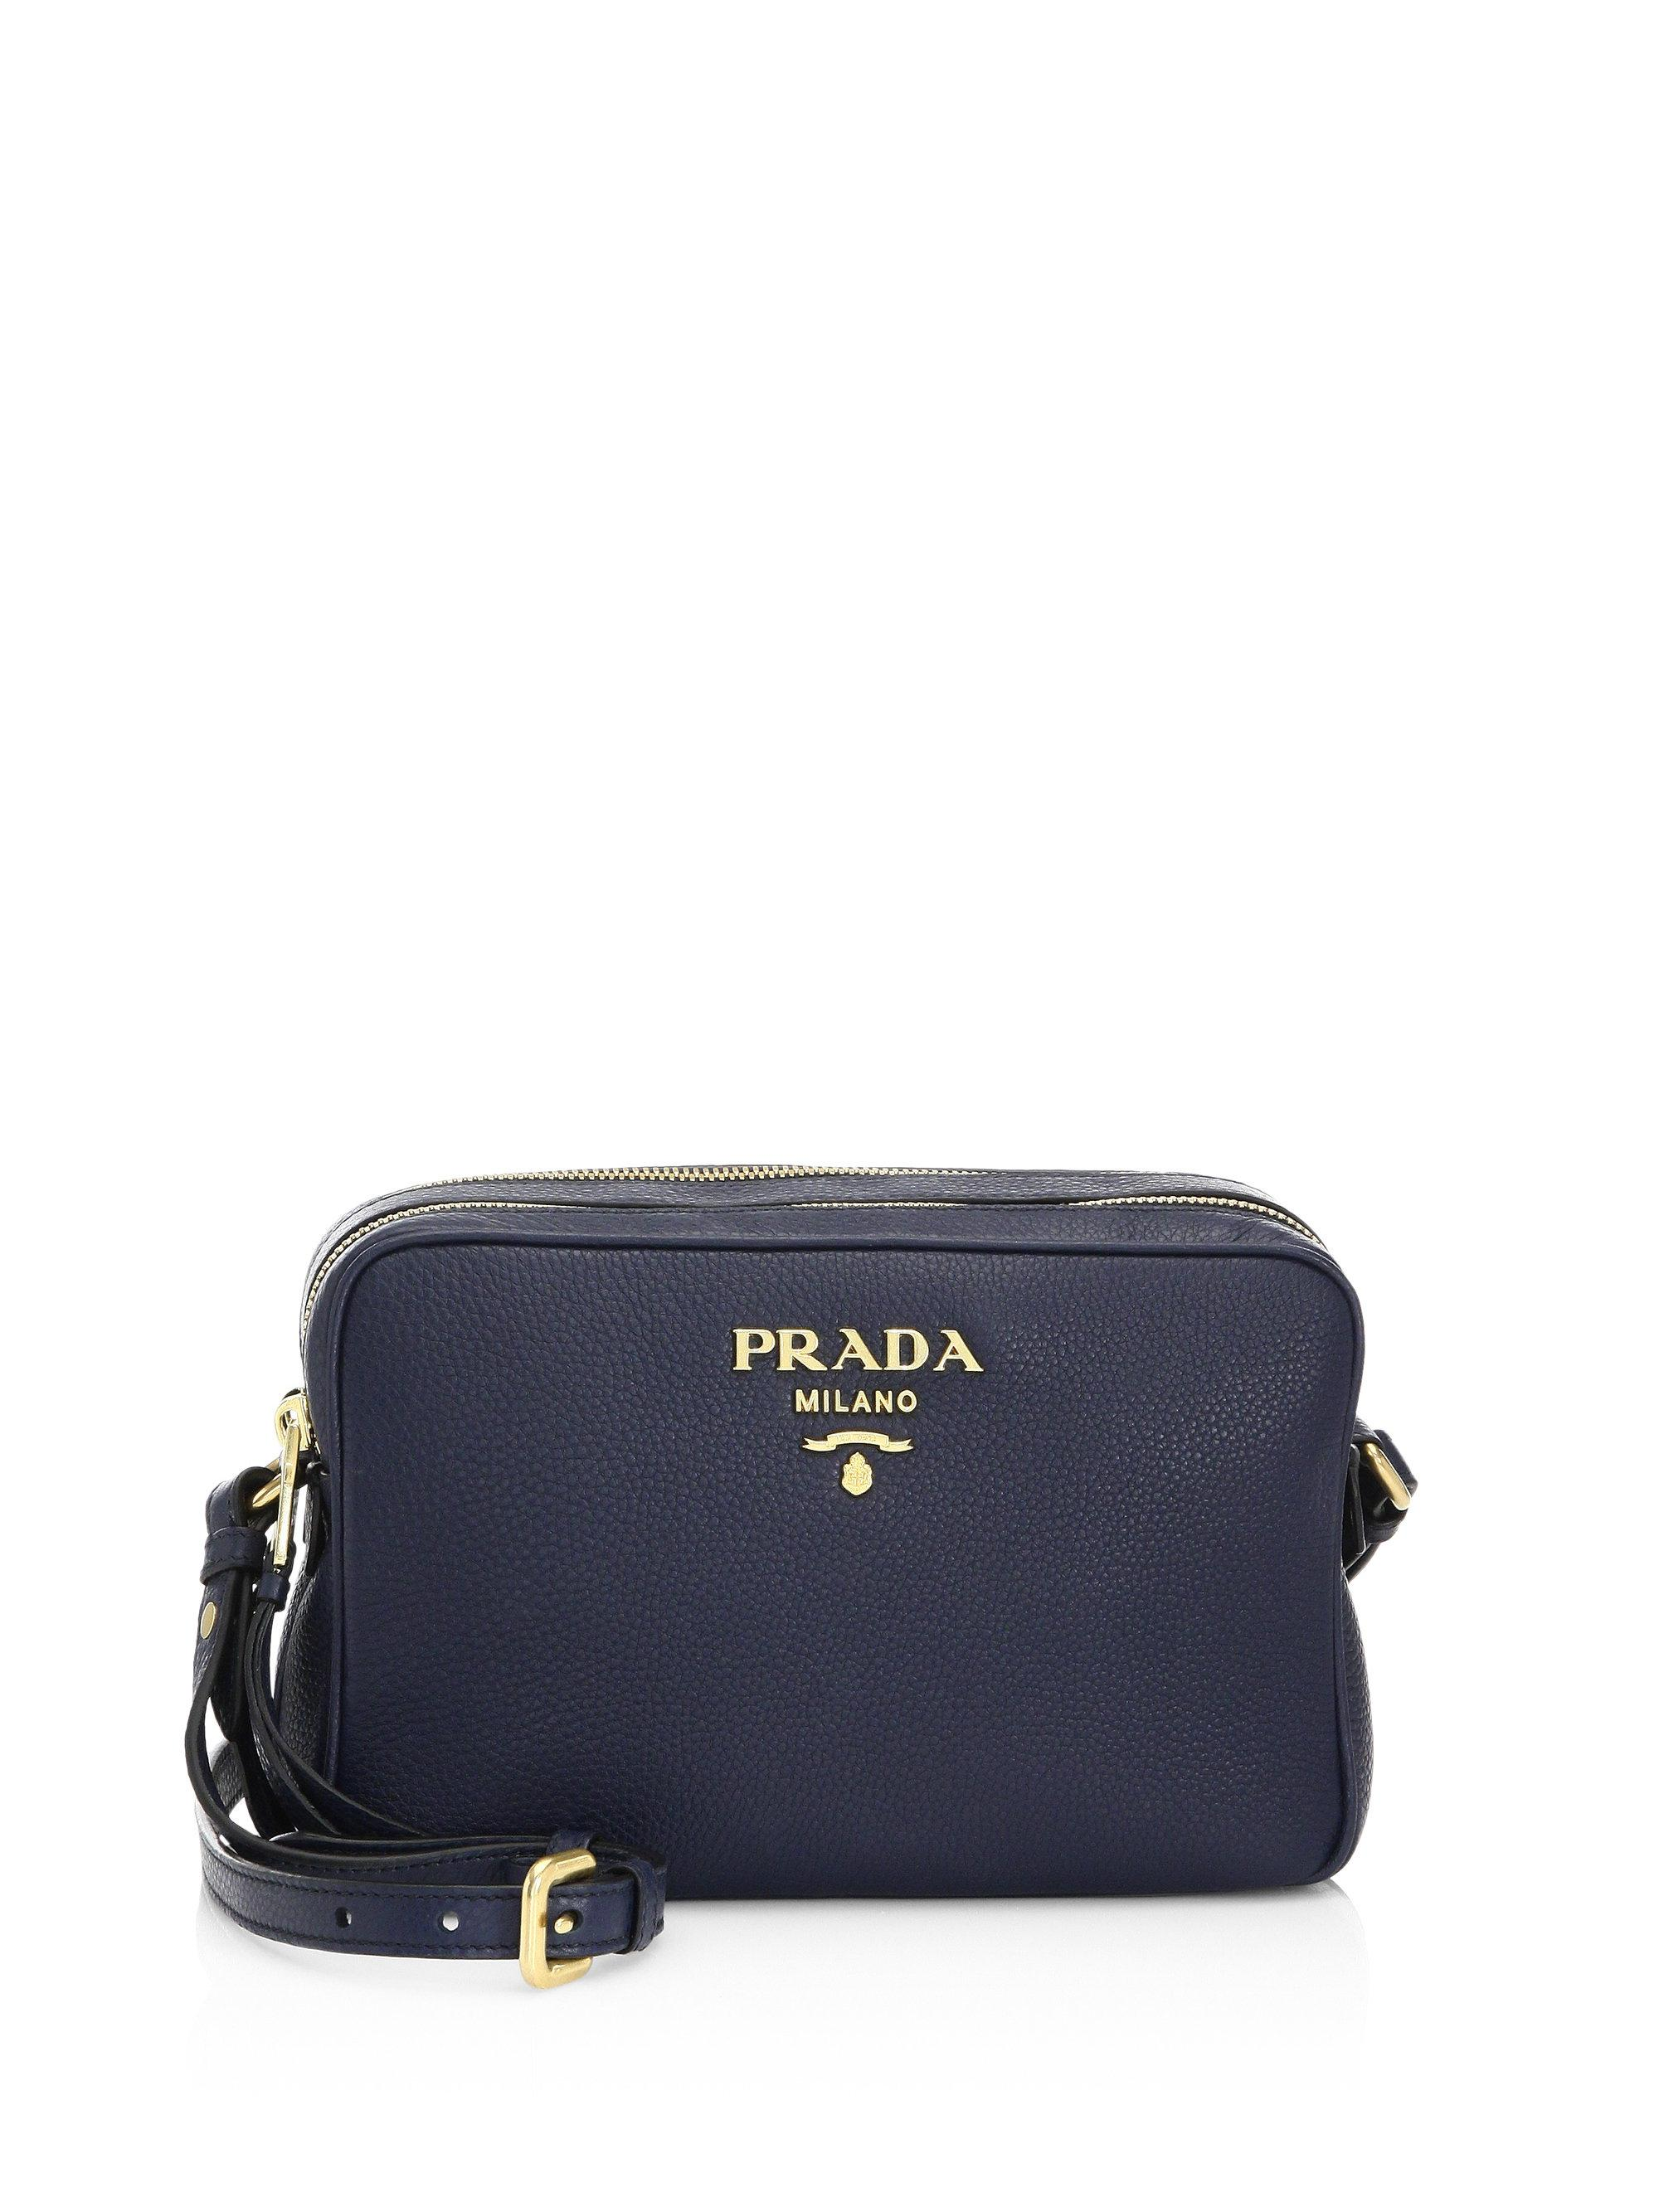 babe059bbcc269 ... real nylon sling bag black 340e0 c8bdd get lyst prada daino crossbody  camera bag in blue